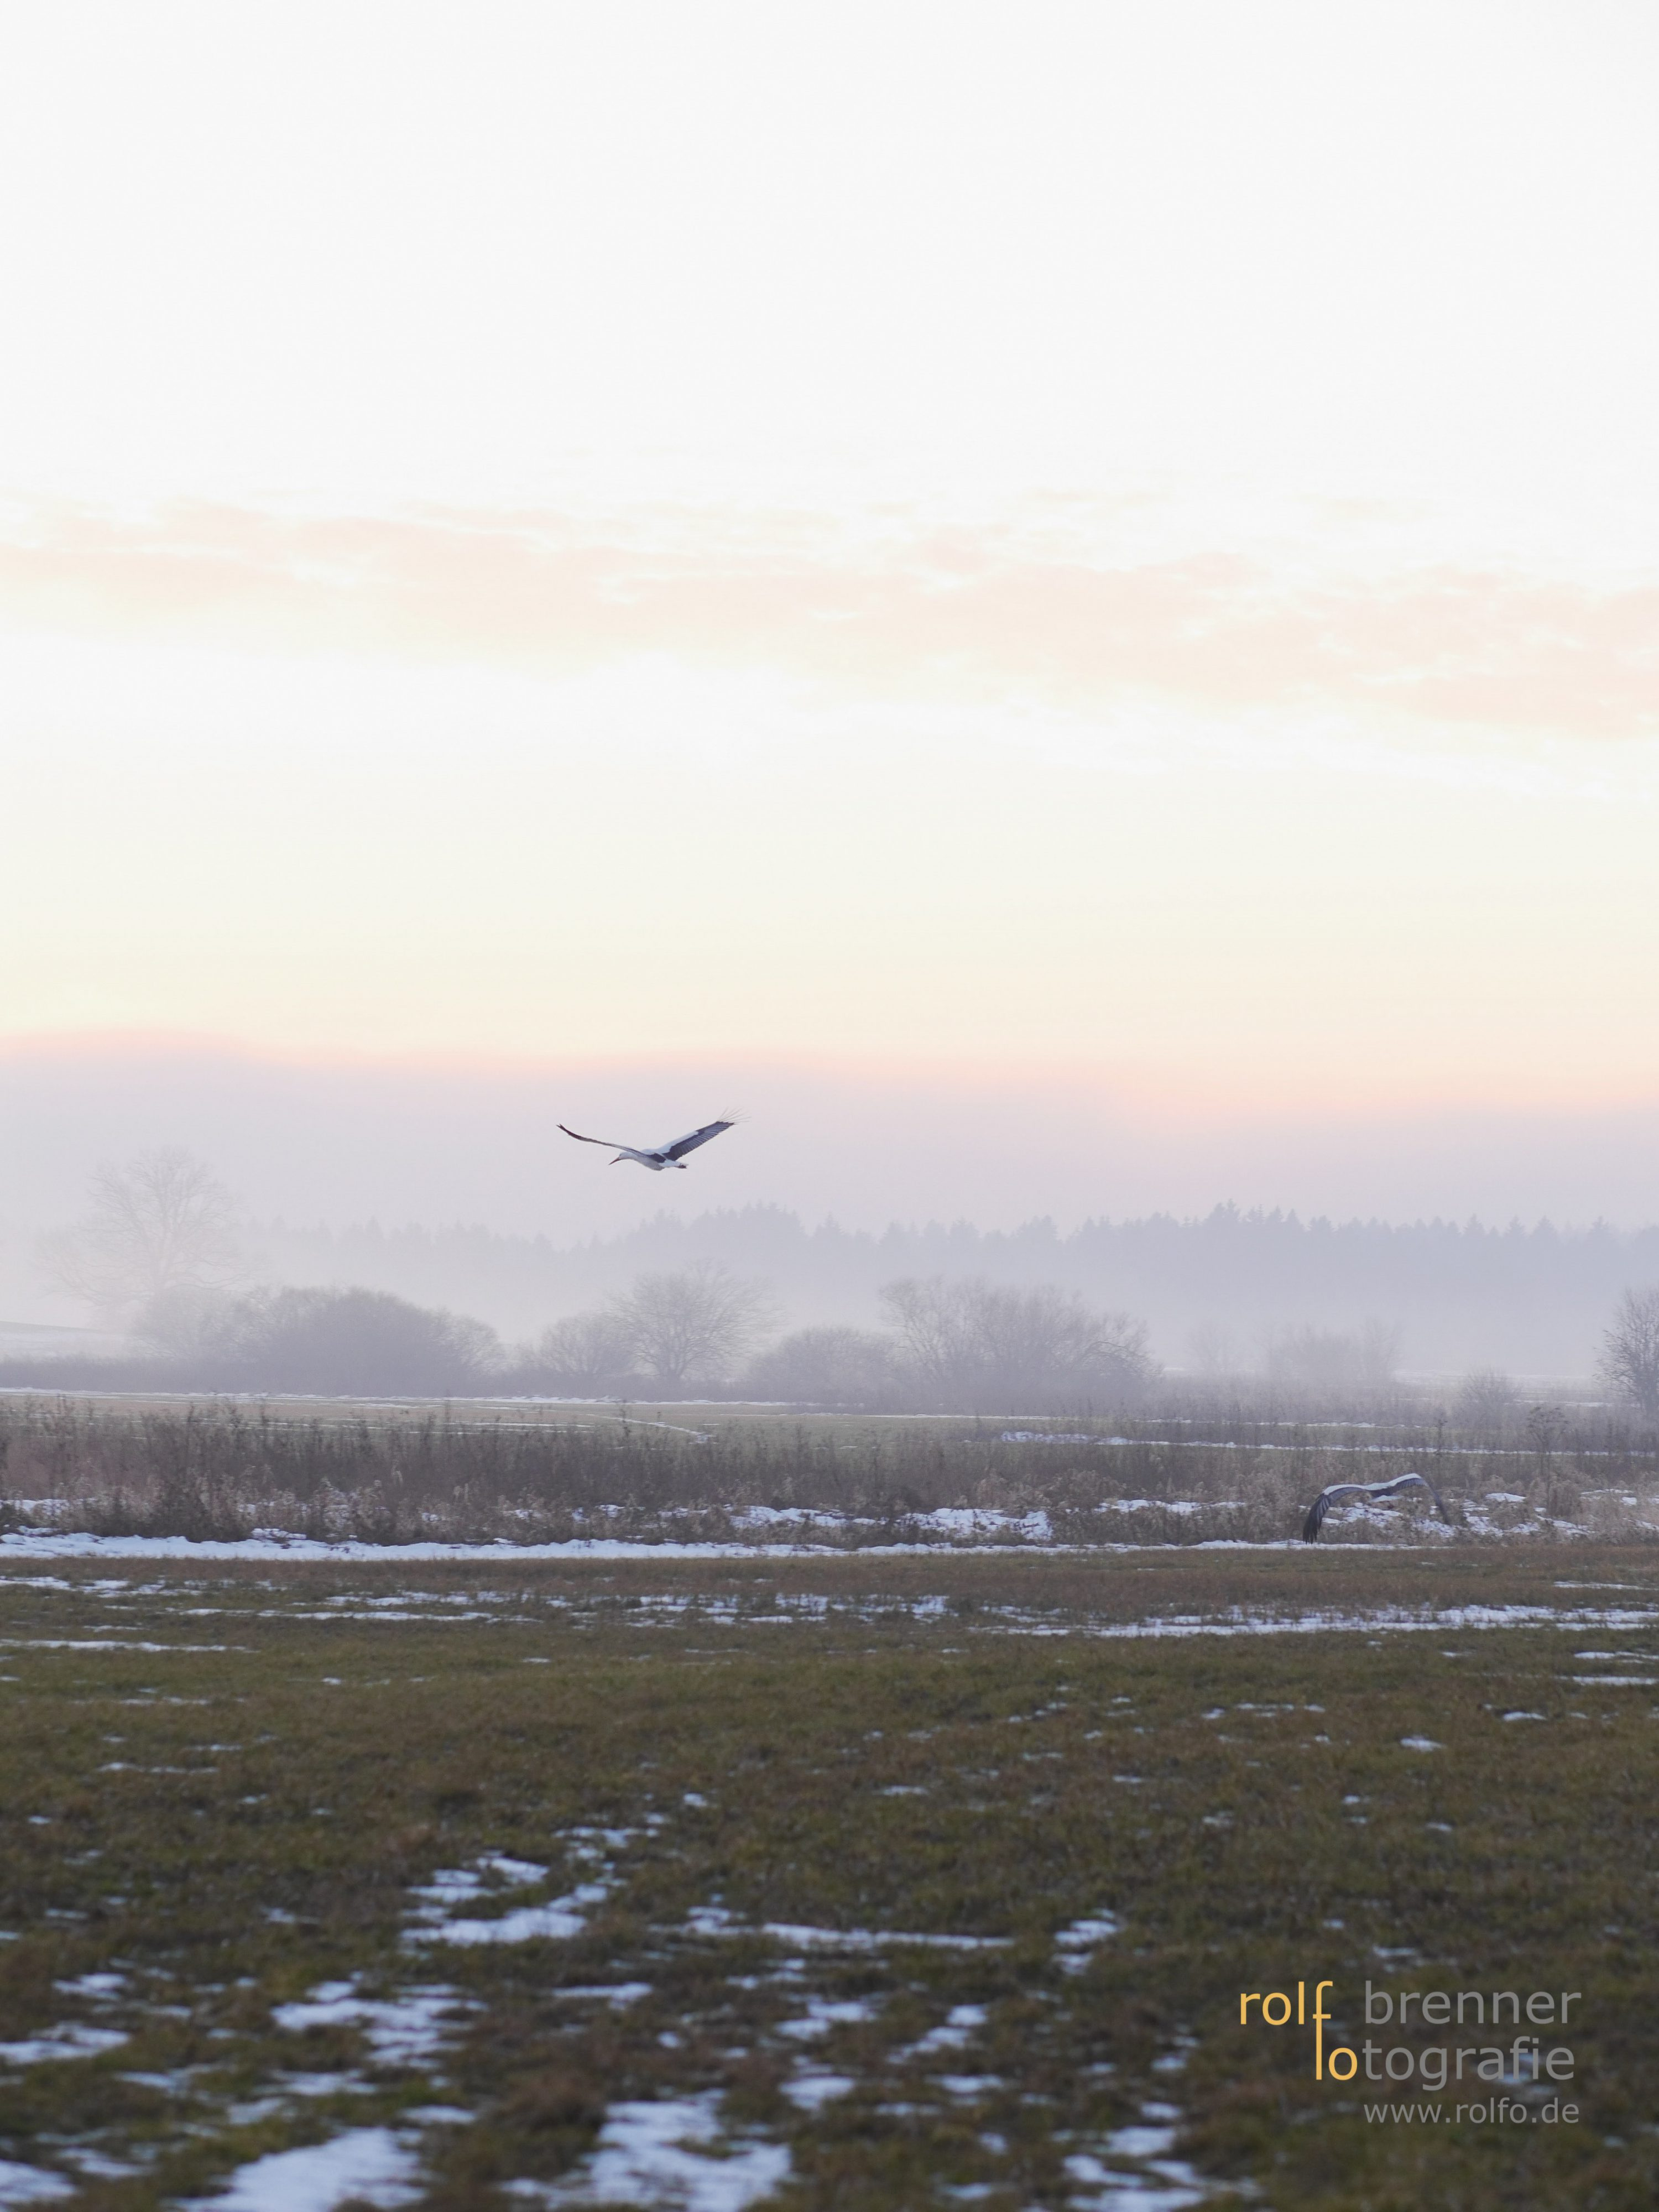 rural landscape in autumn/winter with flying stork